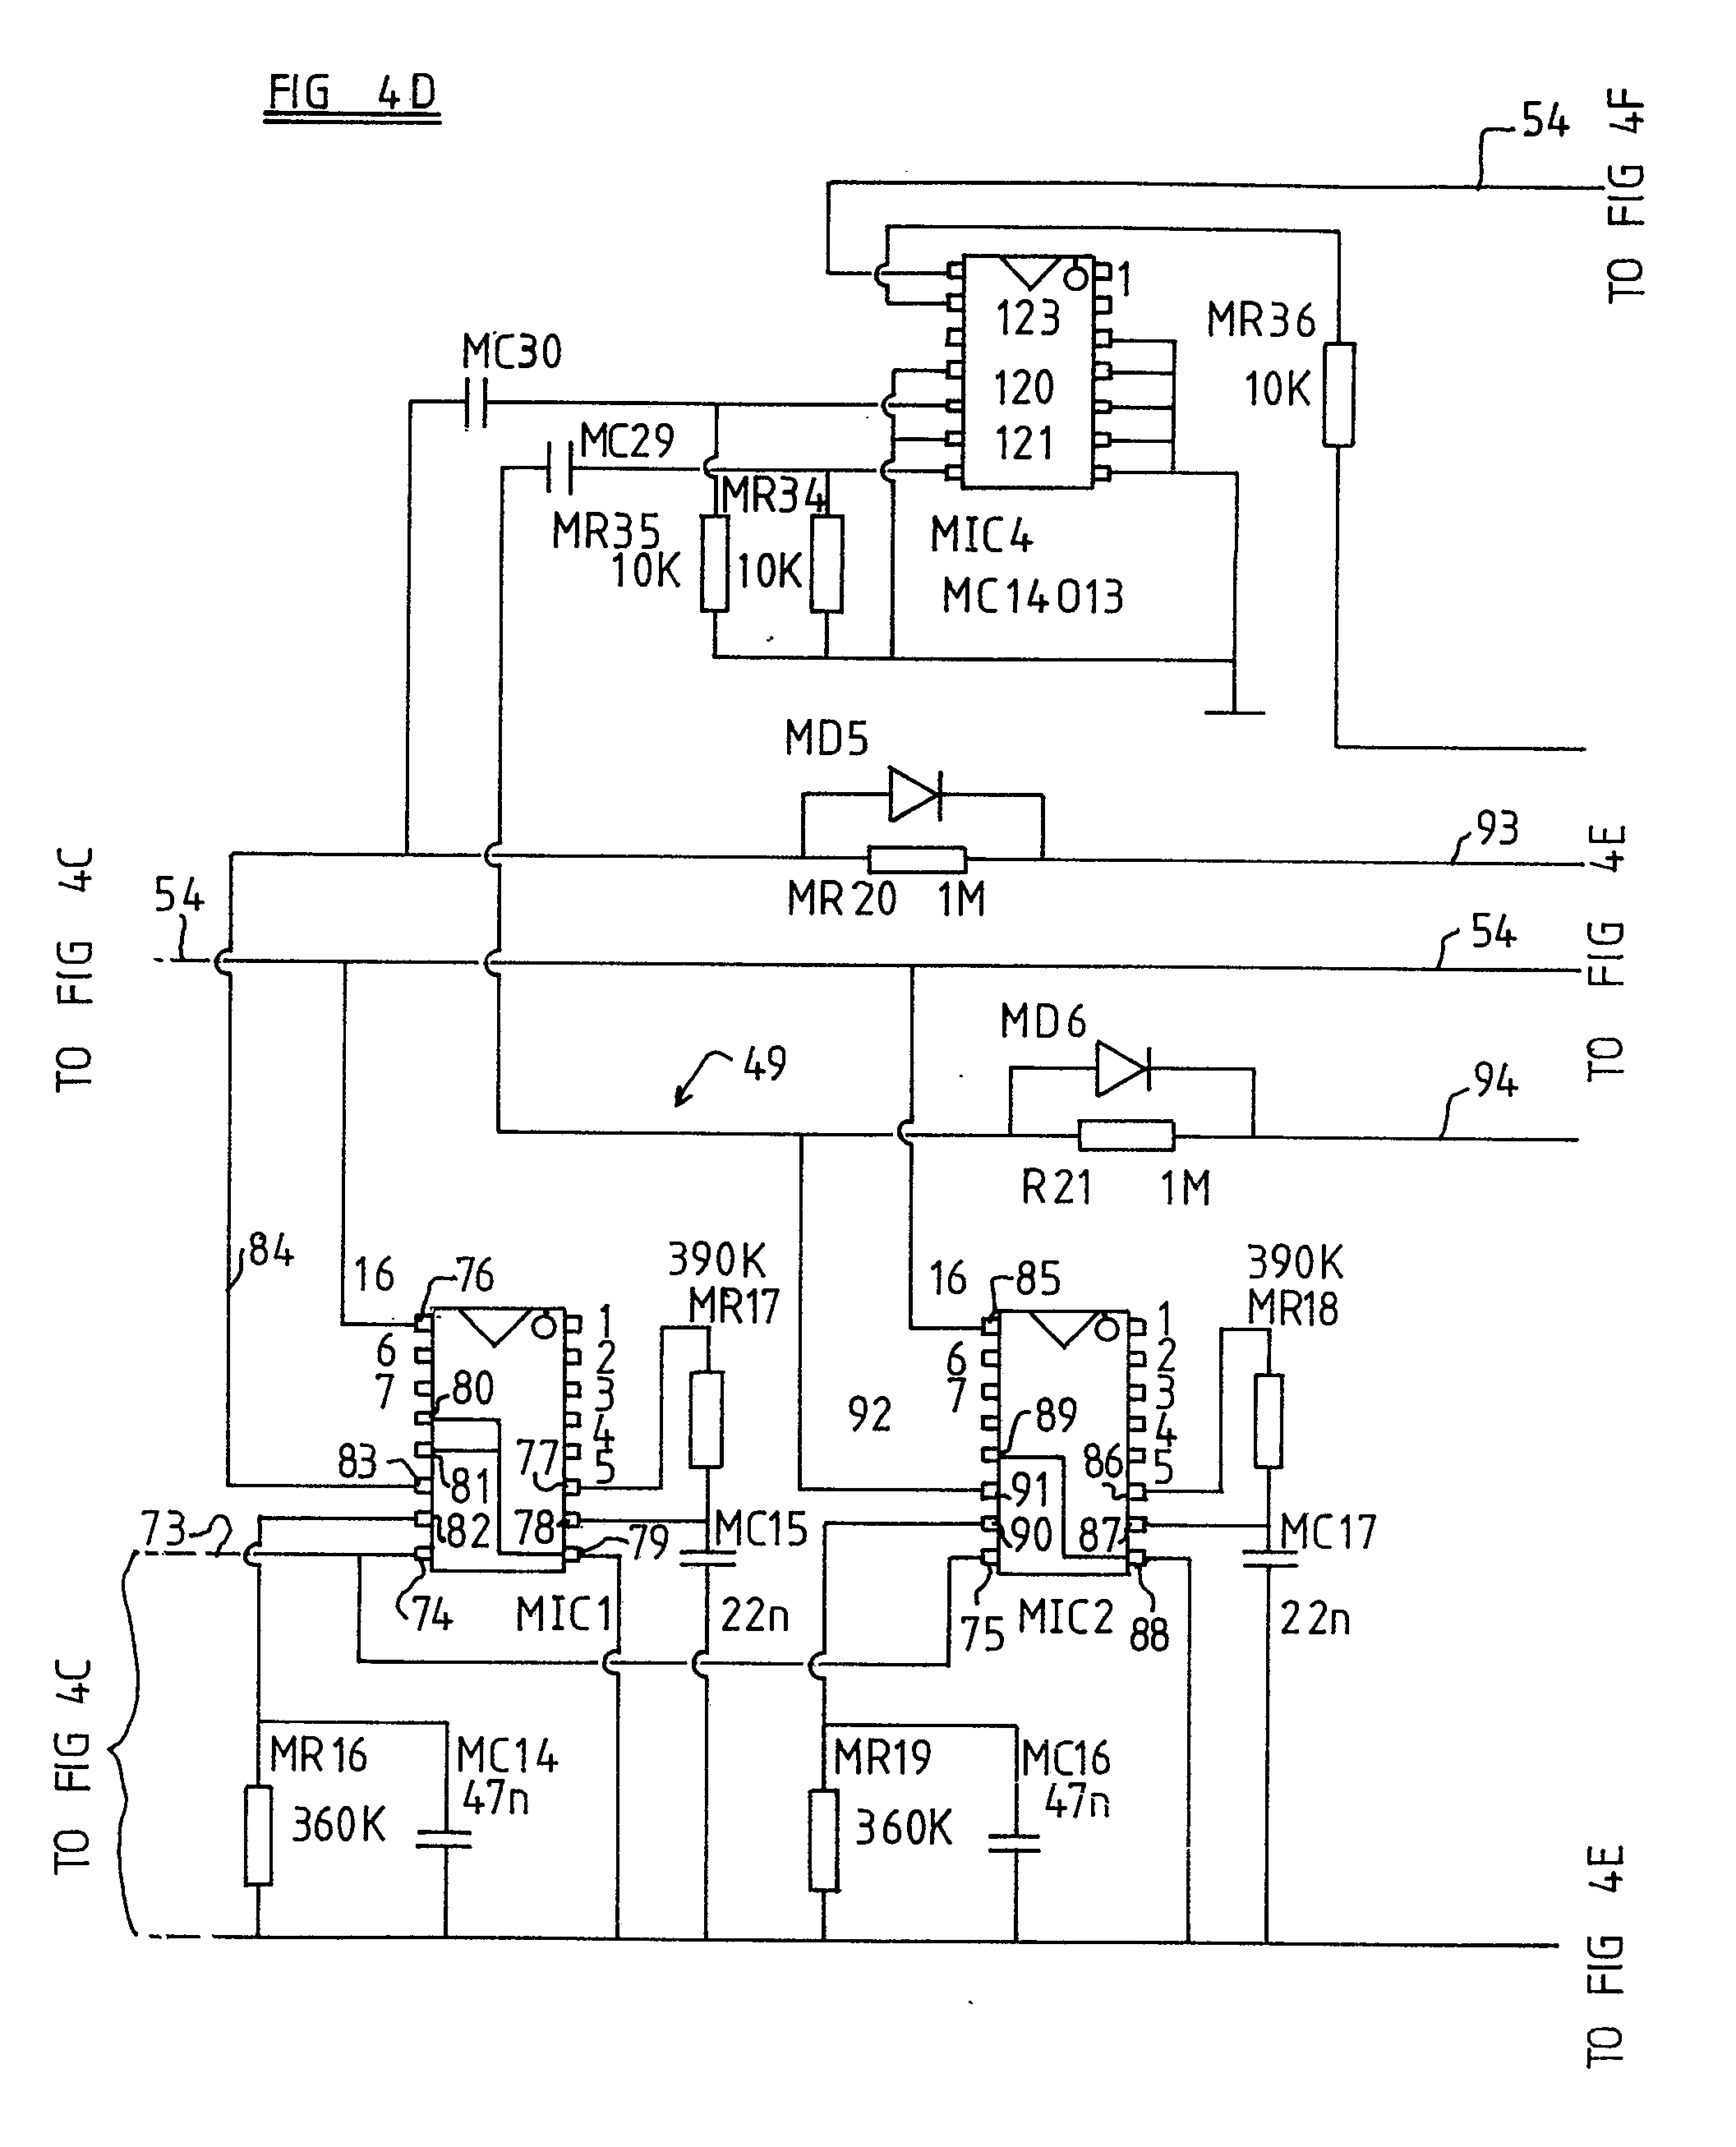 Ge Rr9 Relay Wiring Diagram from patentimages.storage.googleapis.com